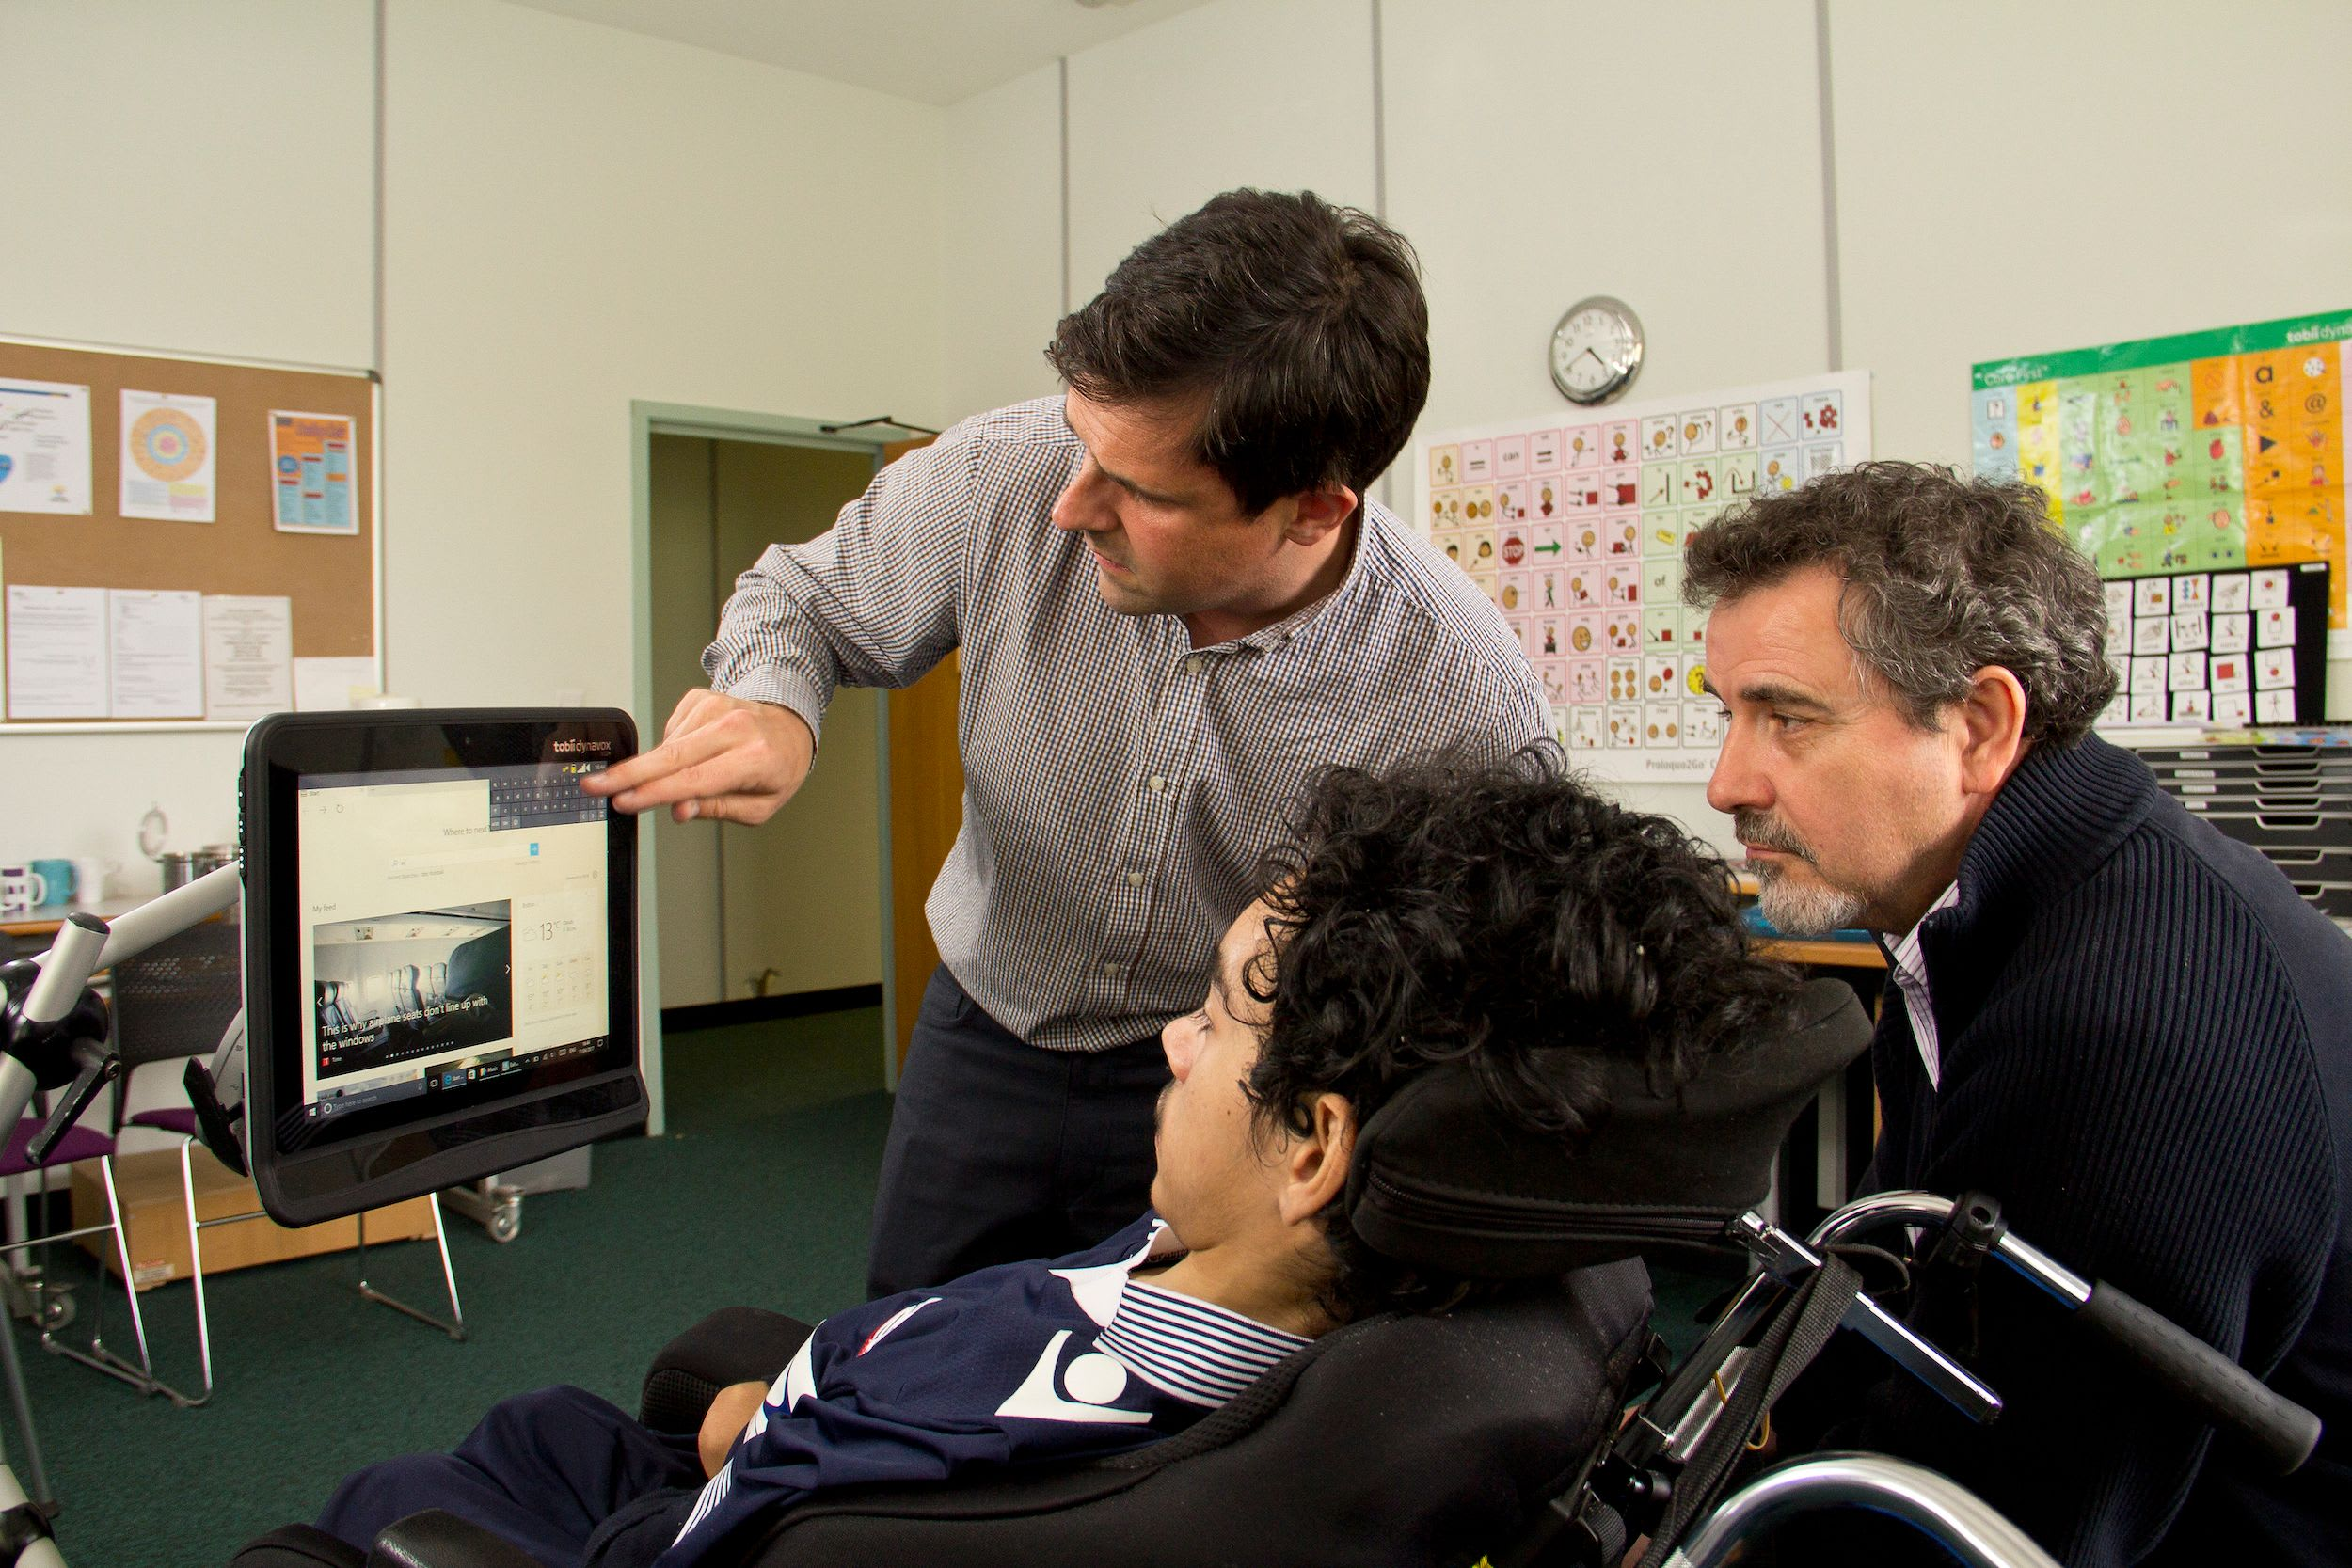 An Ace Centre staff member showing a client how to use their device